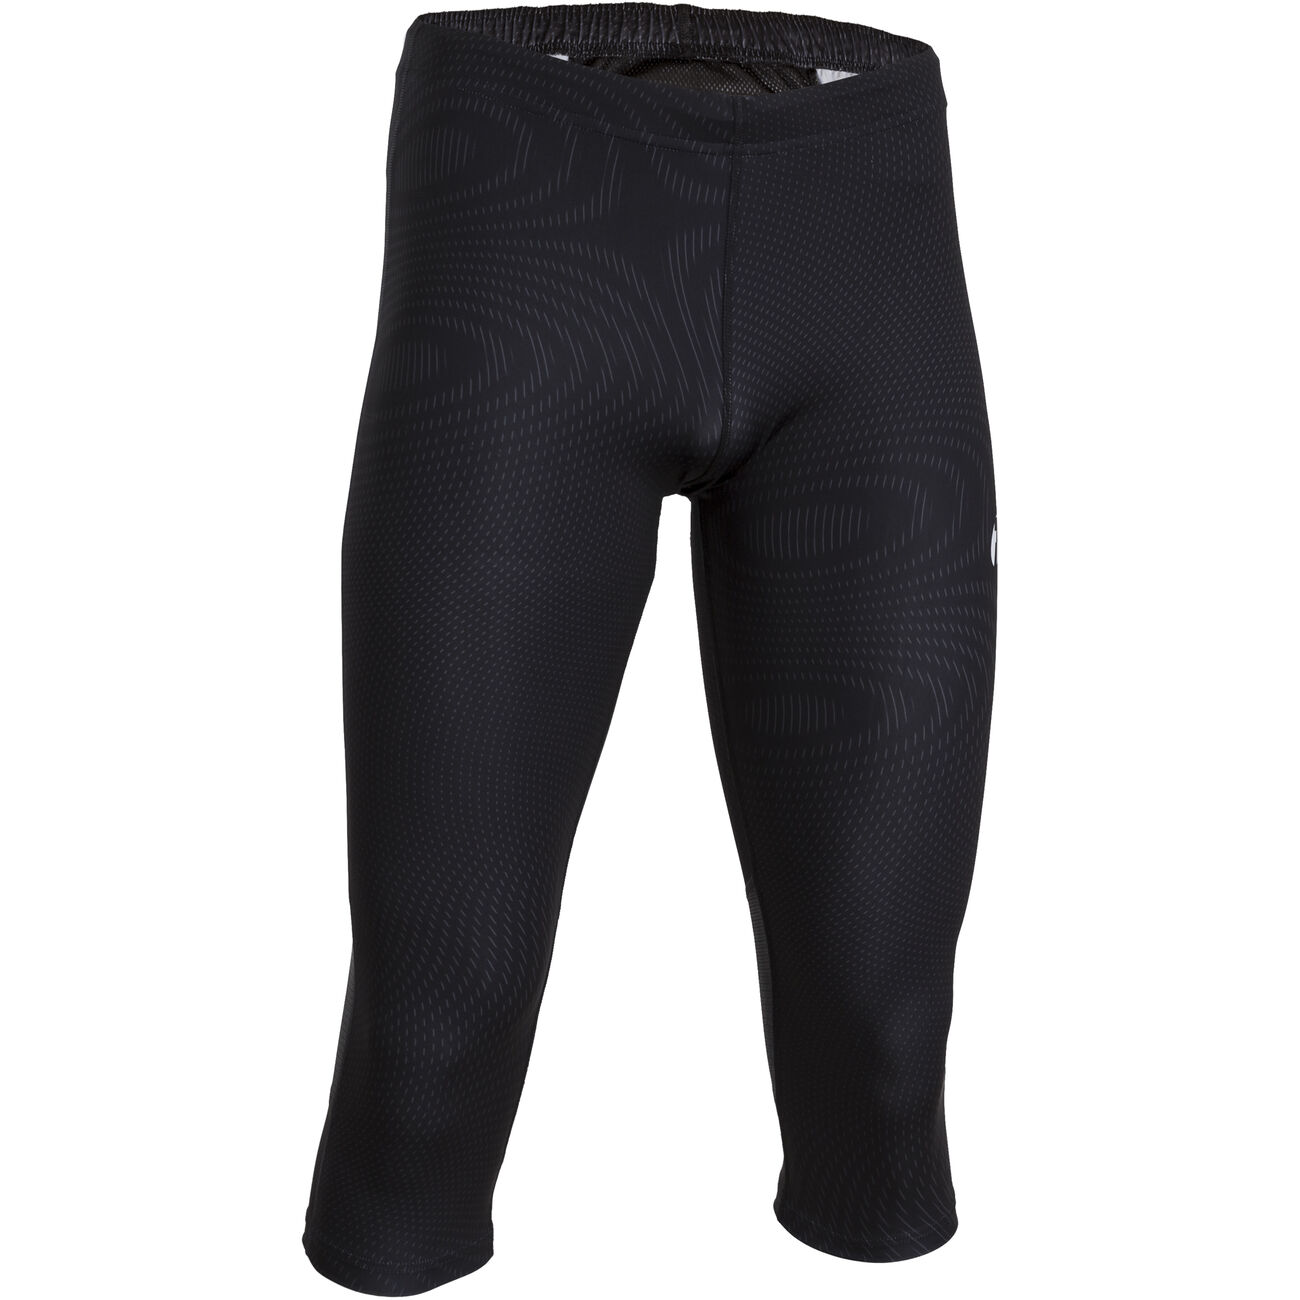 Run 2.0 3/4 tights men's